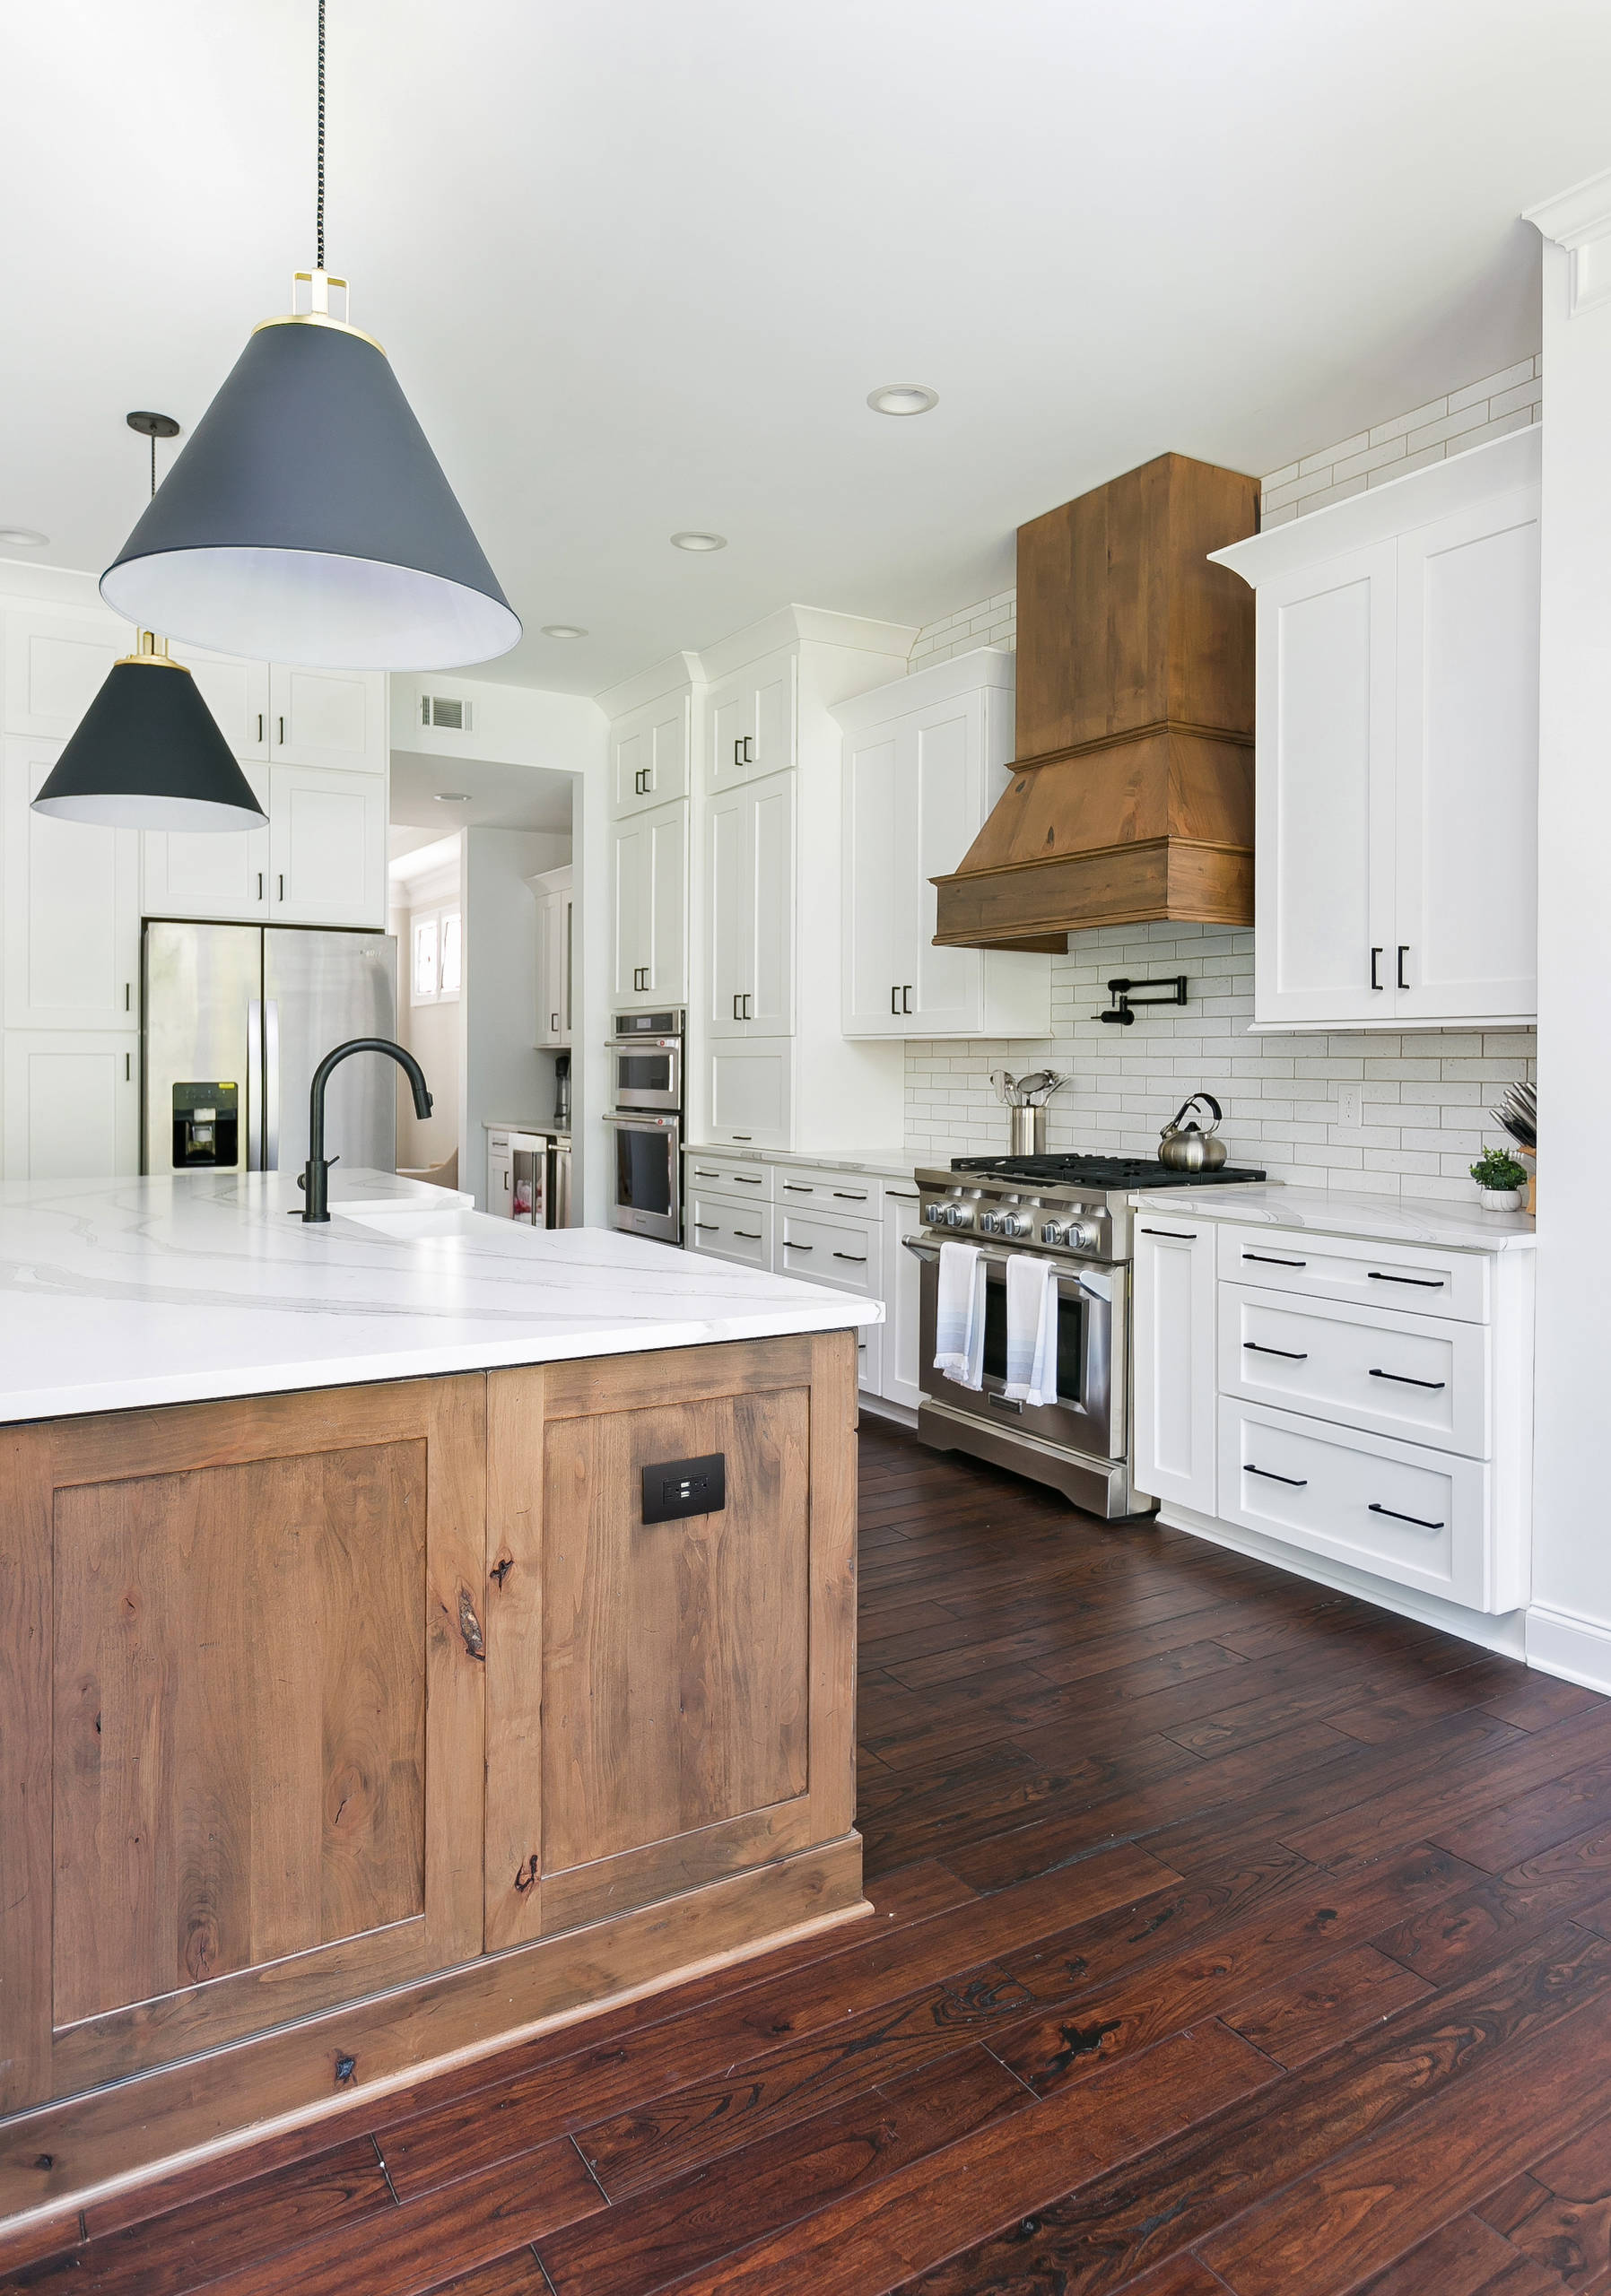 - 75 Beautiful White Kitchen Backsplash Pictures & Ideas Houzz